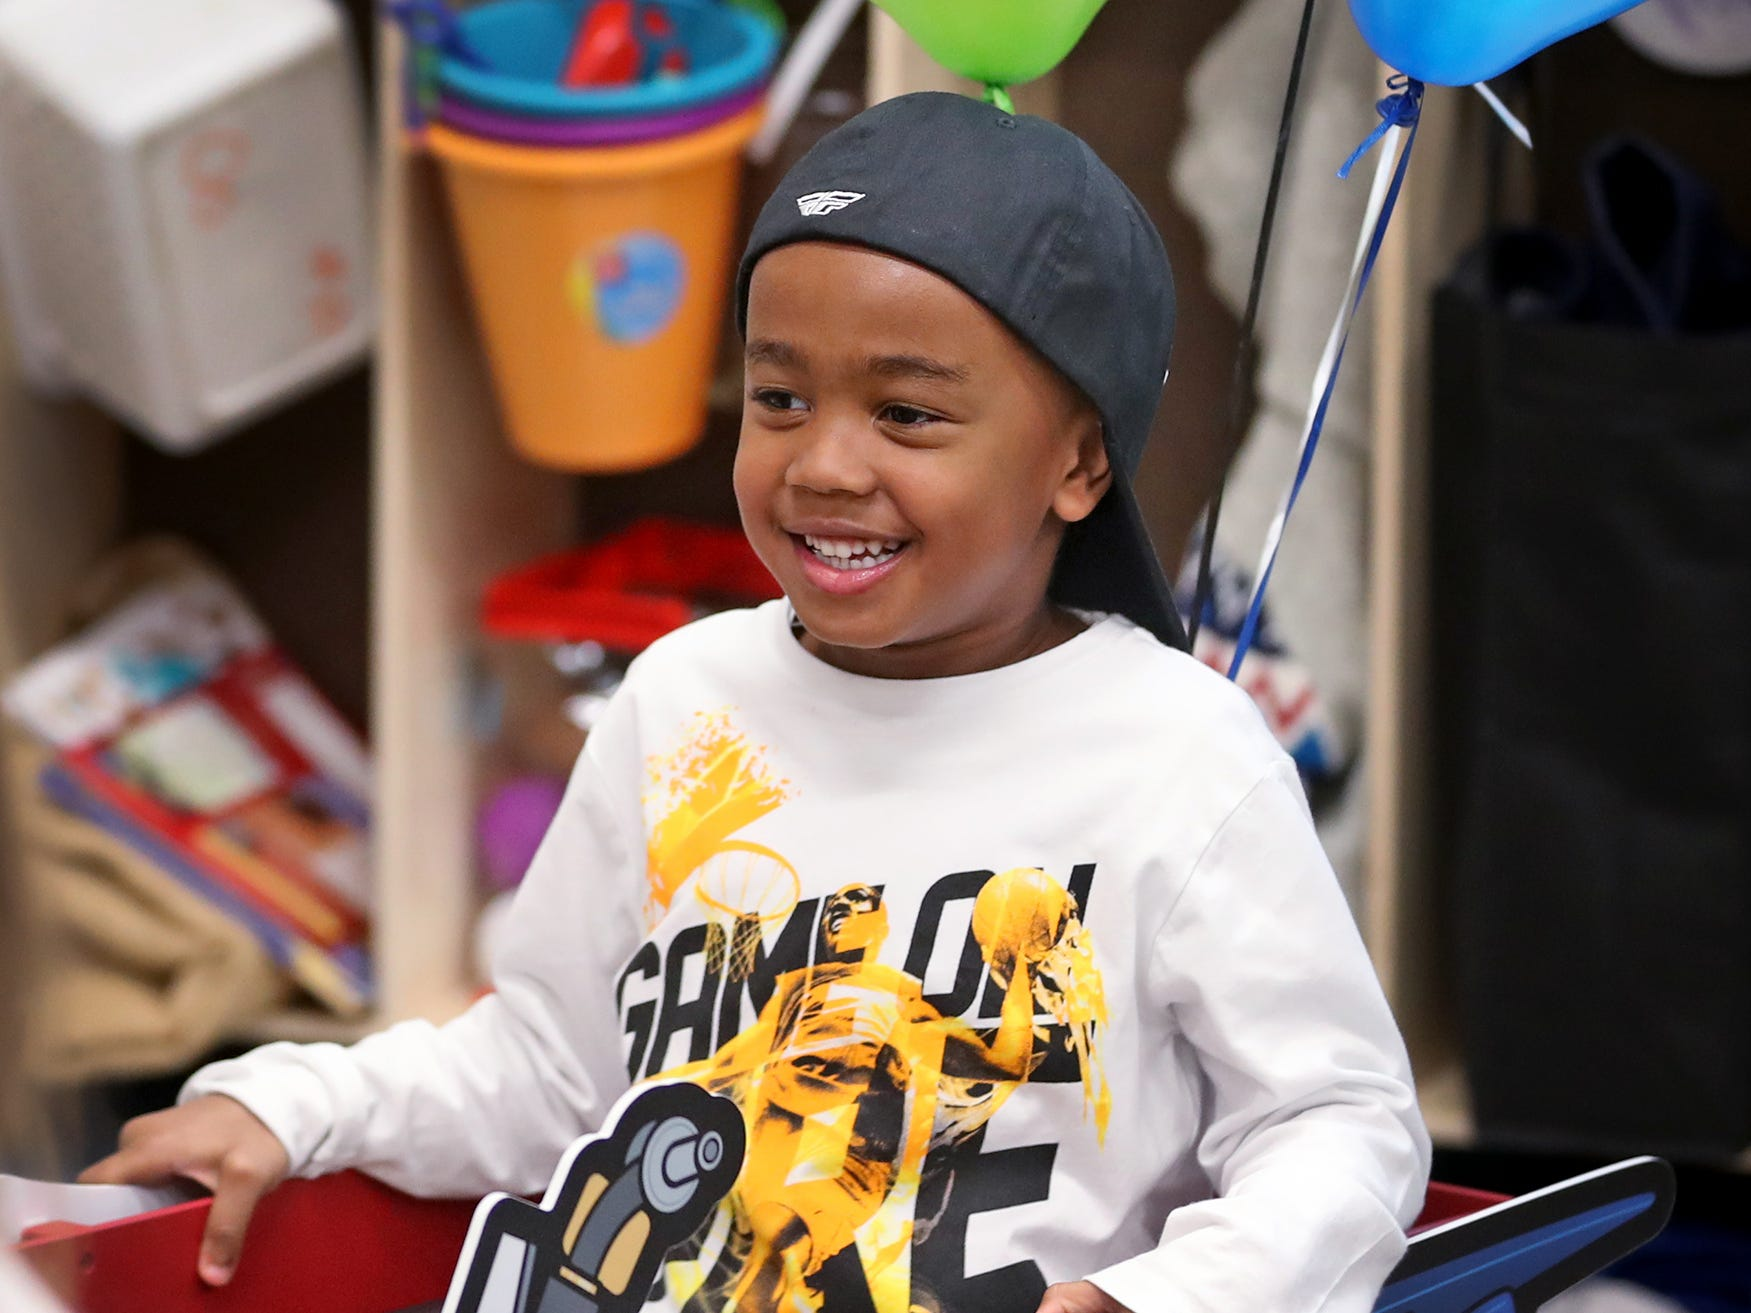 Dycen Tyler laughs while getting a wagon ride from Supercross racer Mike Alessi visiting with kids at Day Early Learning Center, Thursday, March 14, 2019.  Alessi provided Supercross rider jerseys and hats for the kids and gave wagon rides, on a break before the upcoming Supercross race.